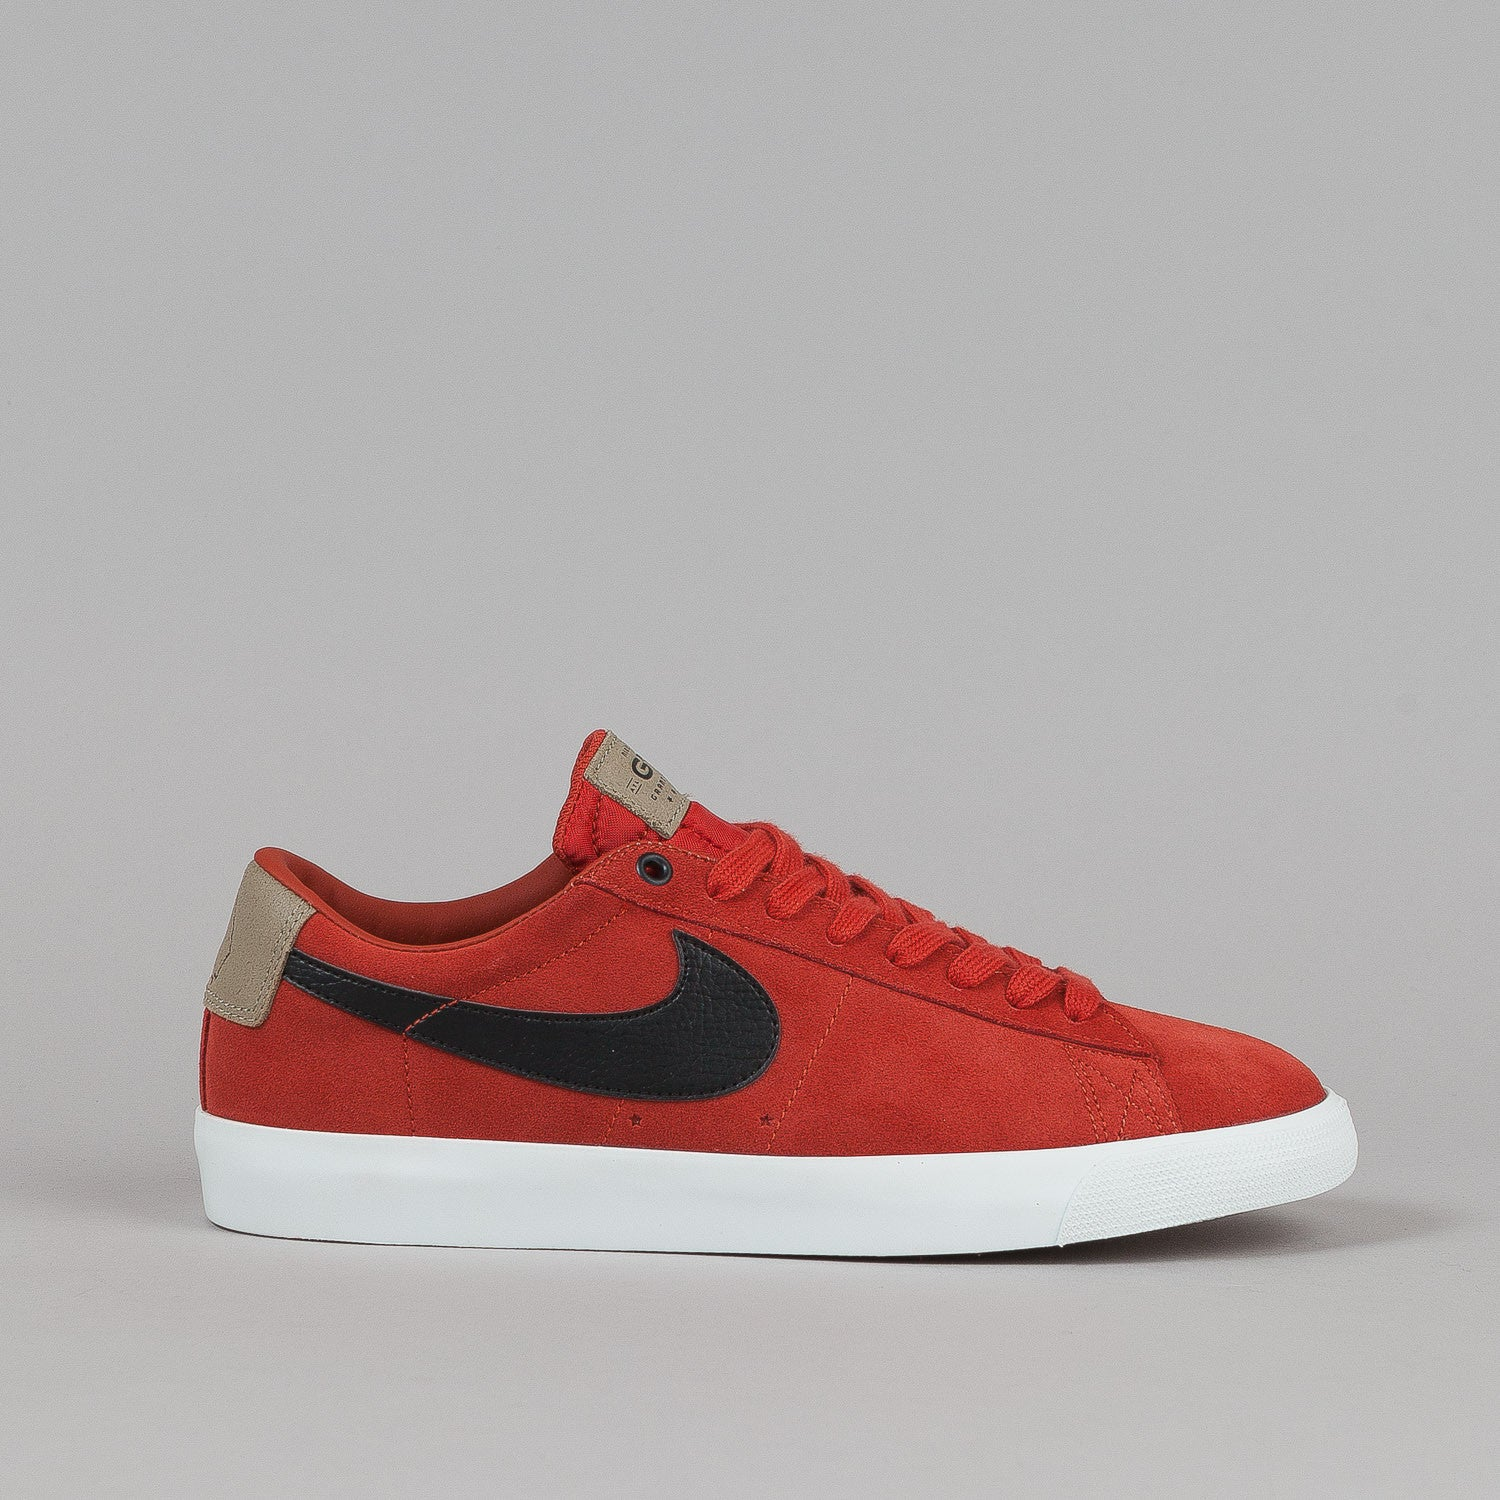 Nike SB Blazer Low GT Shoes QS